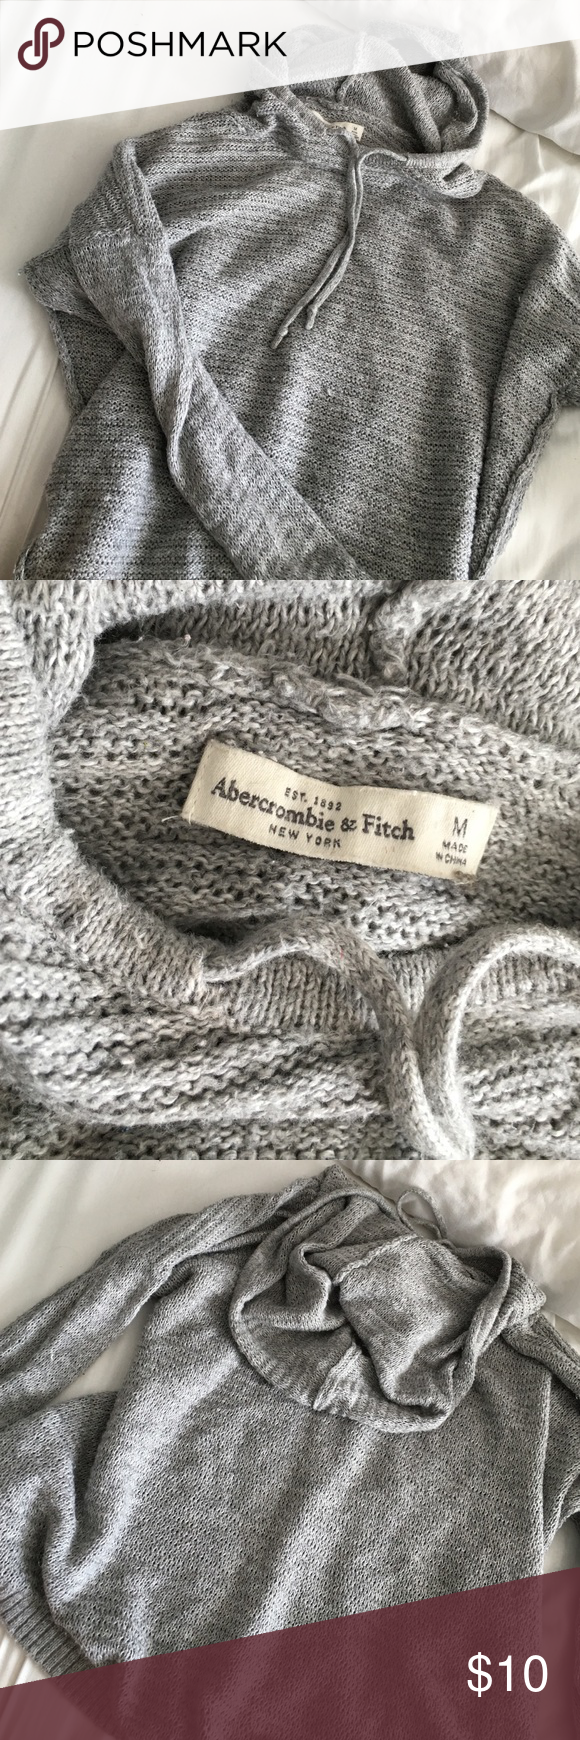 Abercrombie knit sweatshirt good condition barely worn Abercrombie & Fitch Tops Sweatshirts & Hoodies